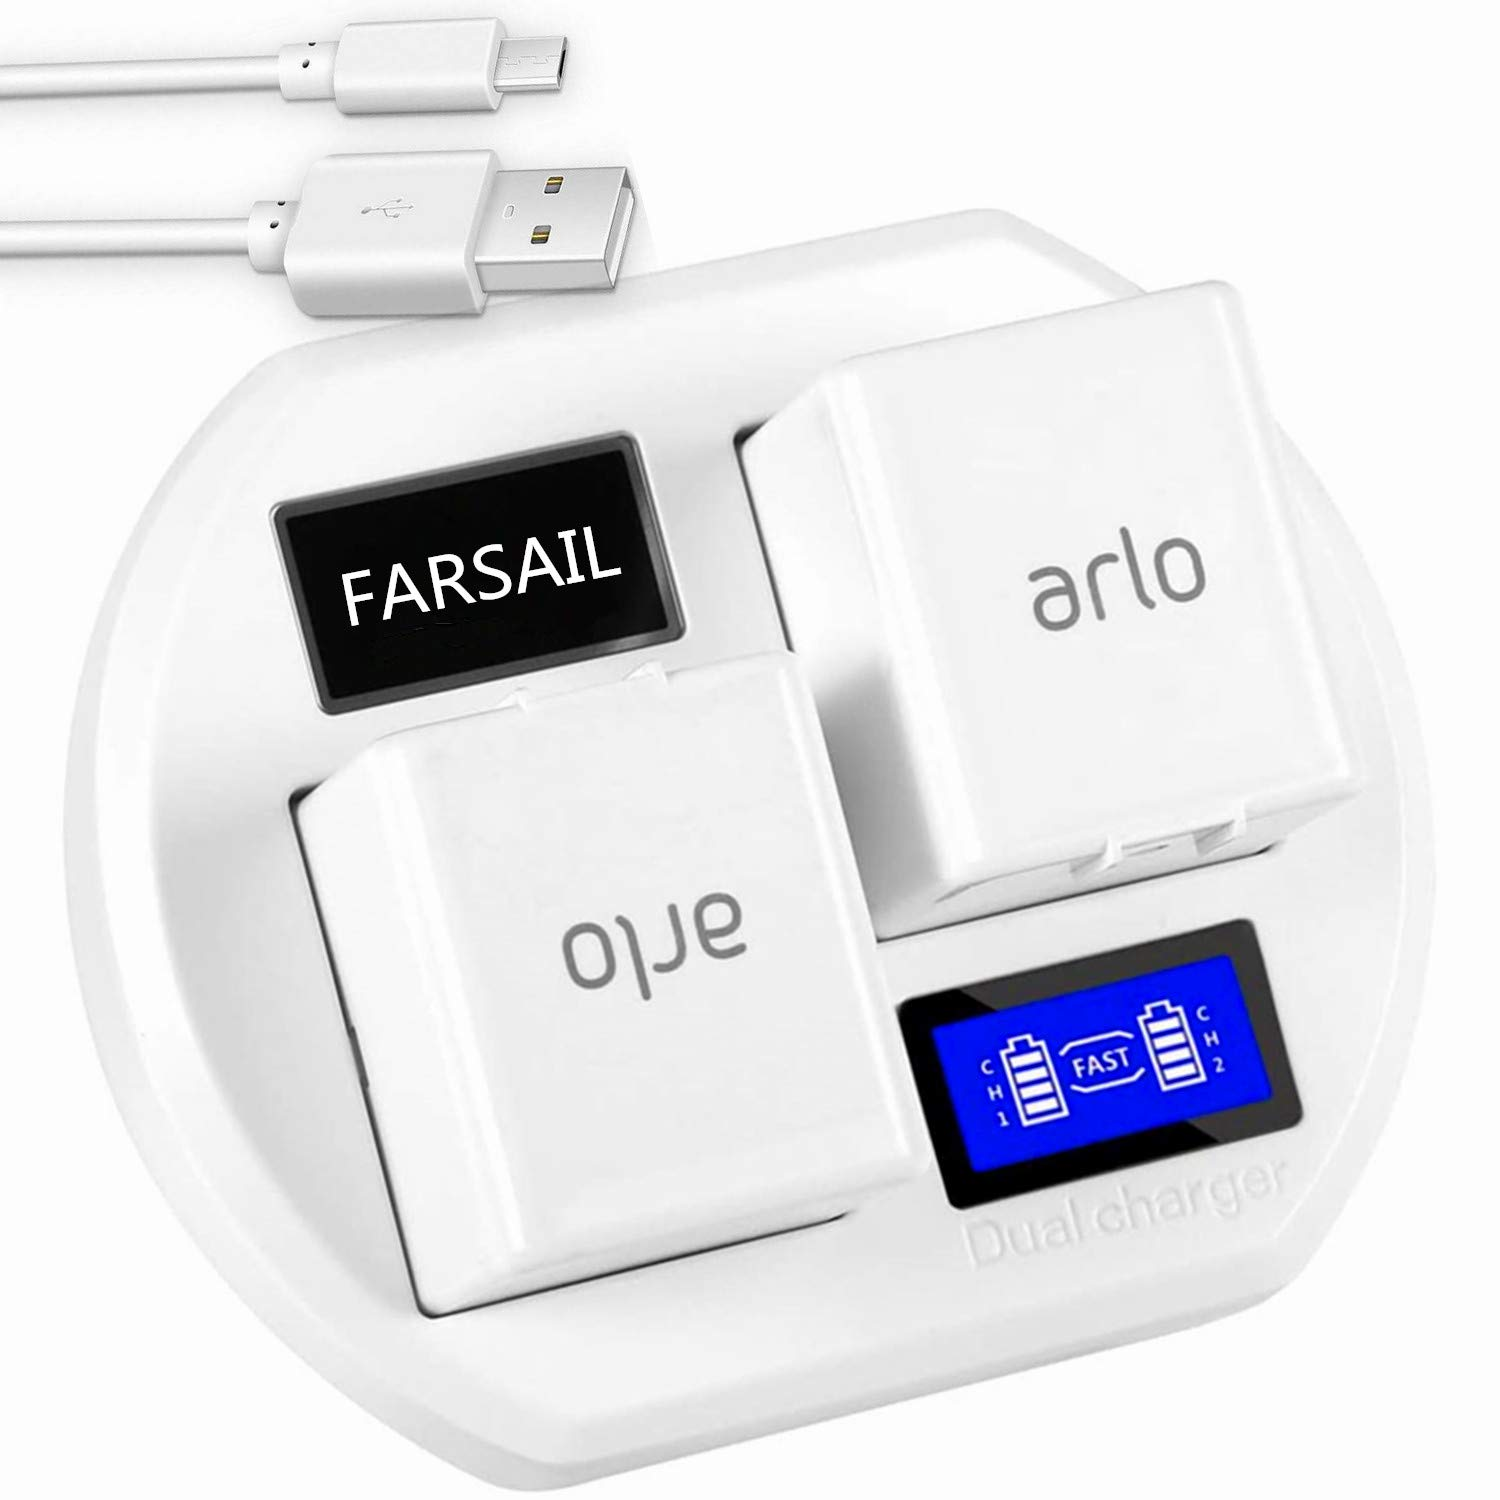 Battery Charger Station Compatible with Arlo Pro Batteries, Arlo Charging Stations, Arlo Pro 2 Batteries Charger, Arlo Camera Charger, Arlo pro Charger